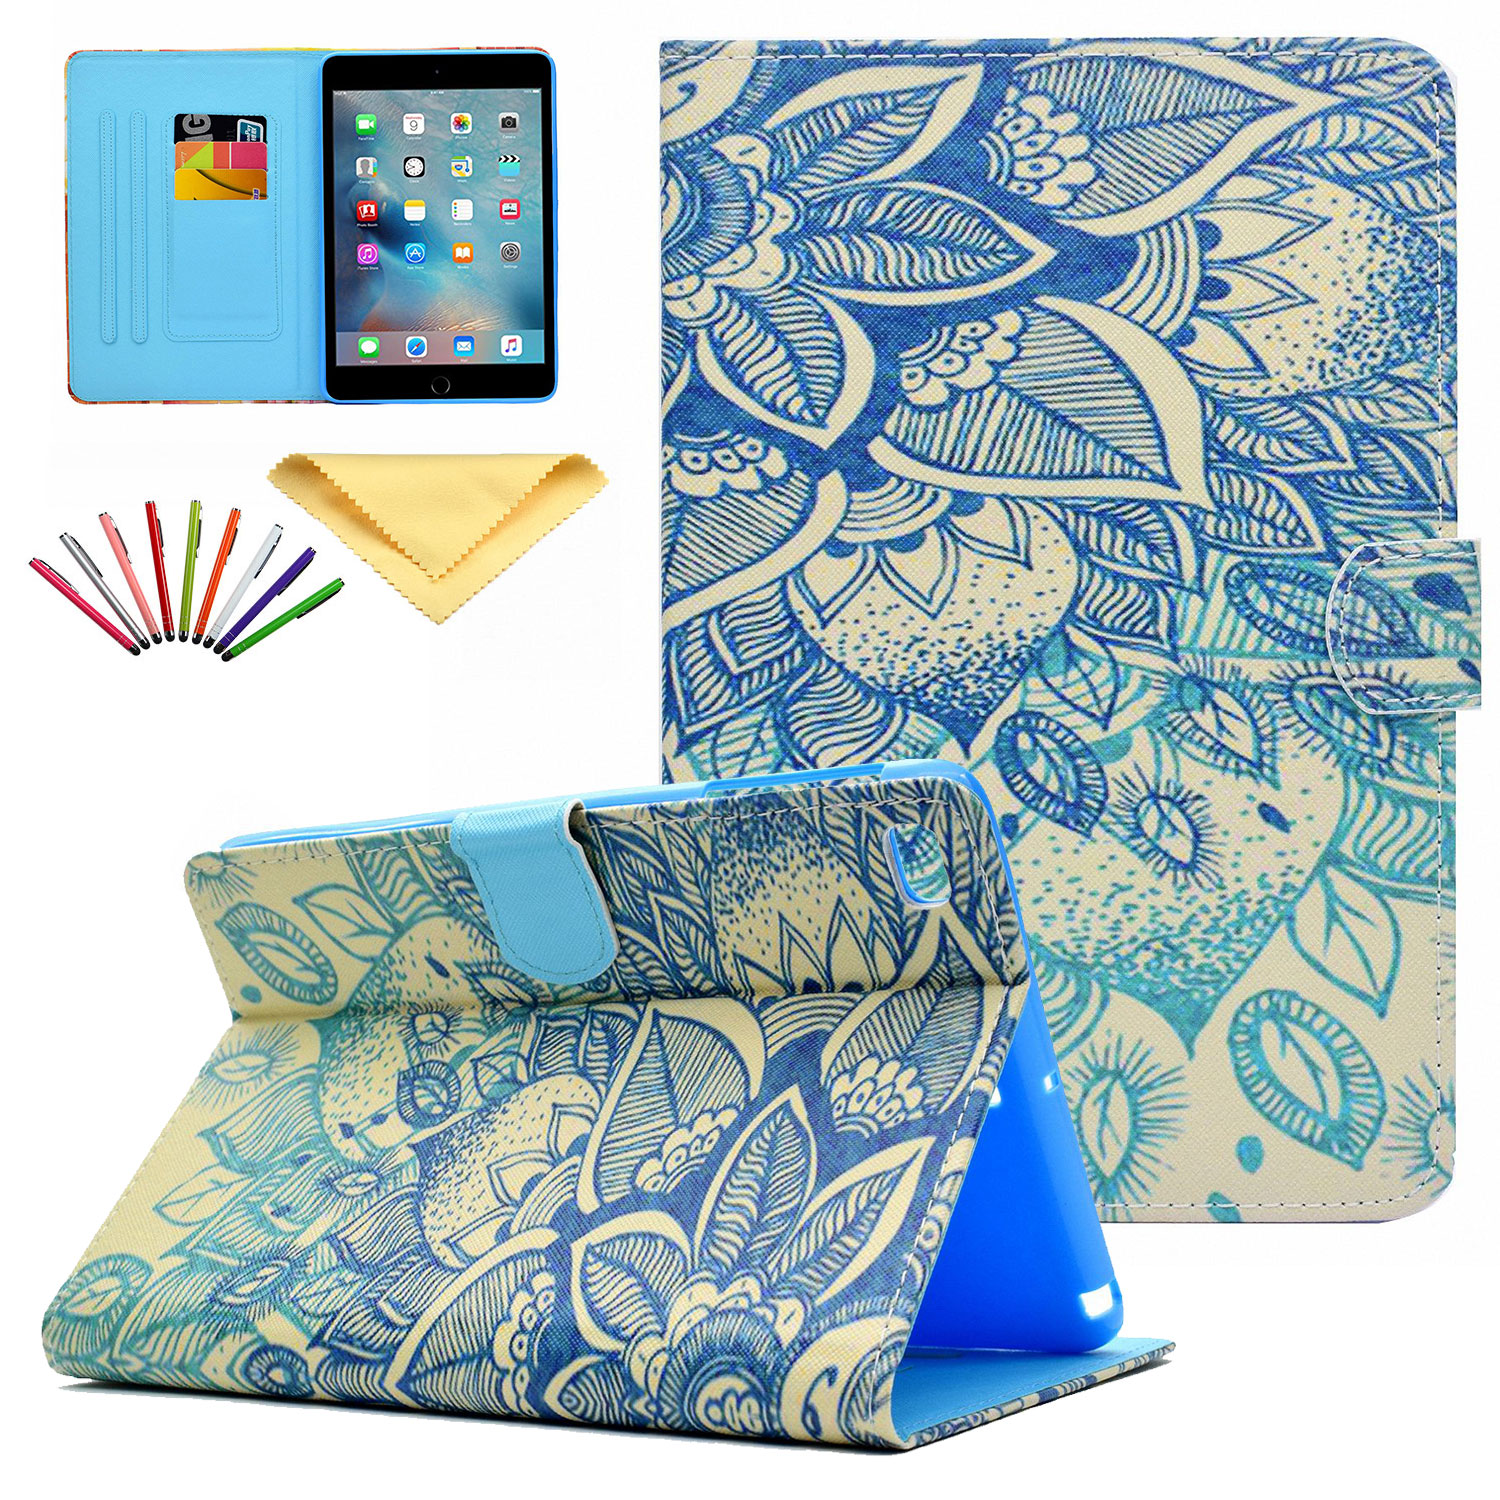 iPad Mini Case, iPad Mini 1 2 3 4 Case, Allytech PU Leather Flip Wallet Case with Auto Sleep/Wake Feature Smart Folio Stand Cover for Apple iPad Mini 1/ Mini 2/ Mini 3/ Mini 4, Blue Flower